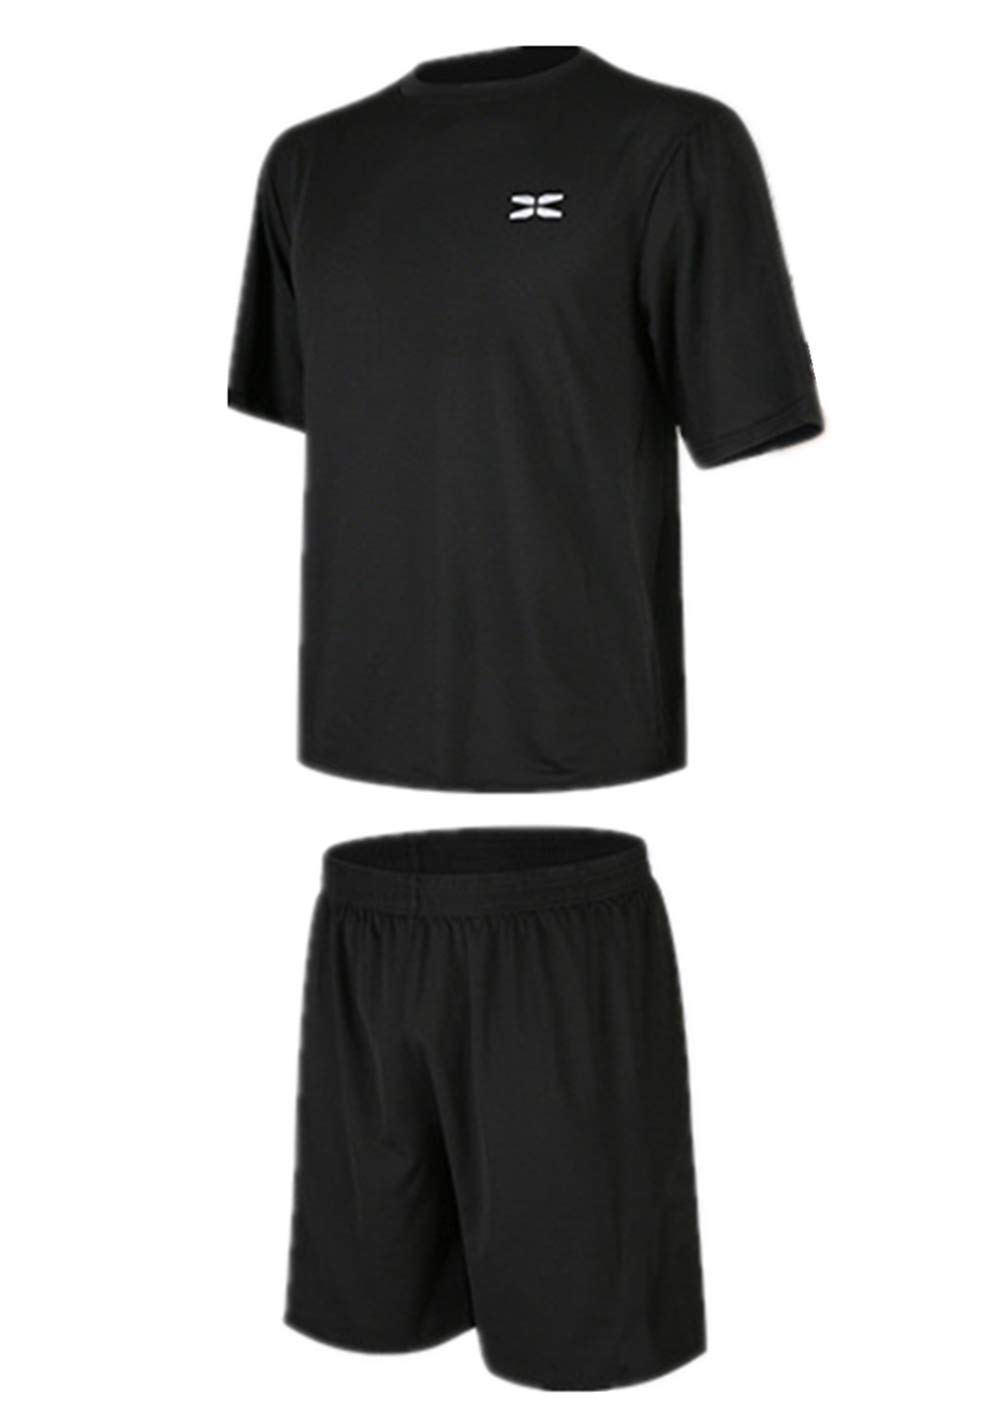 Summer Men's Sports Suit Fitness Clothing Quick-Drying Training Fitness Set(black2-convection,S)